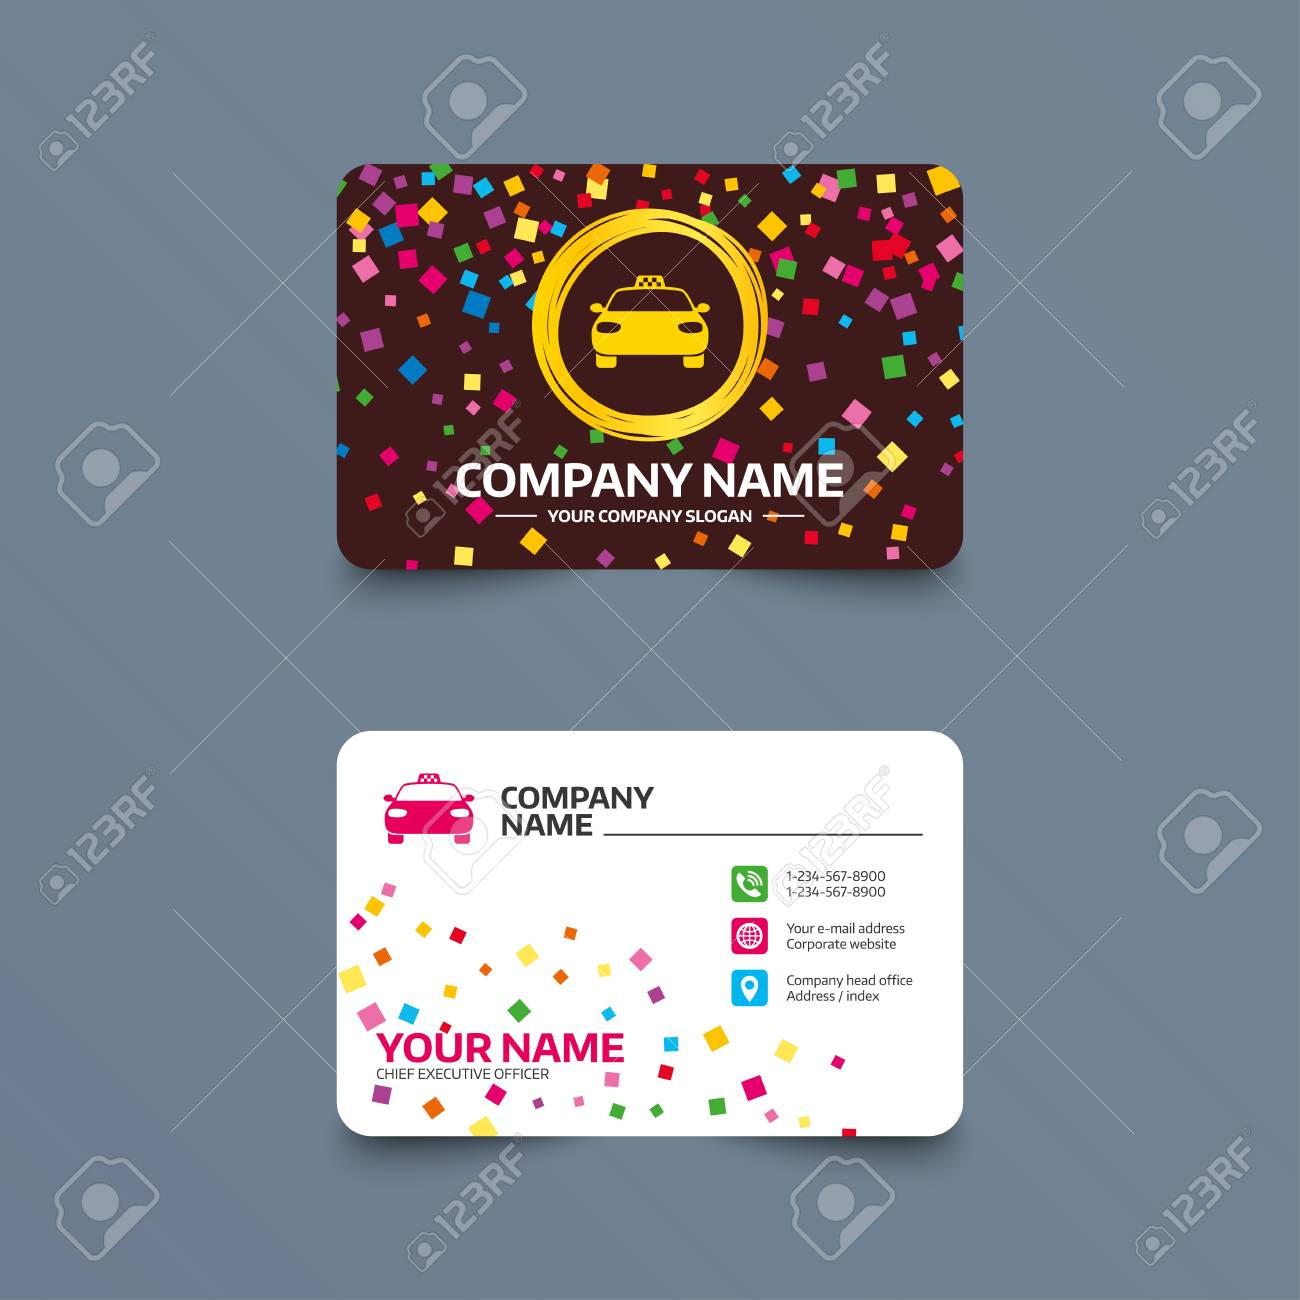 Business card template with confetti pieces taxi car sign icon business card template with confetti pieces taxi car sign icon public transport symbol cheaphphosting Choice Image